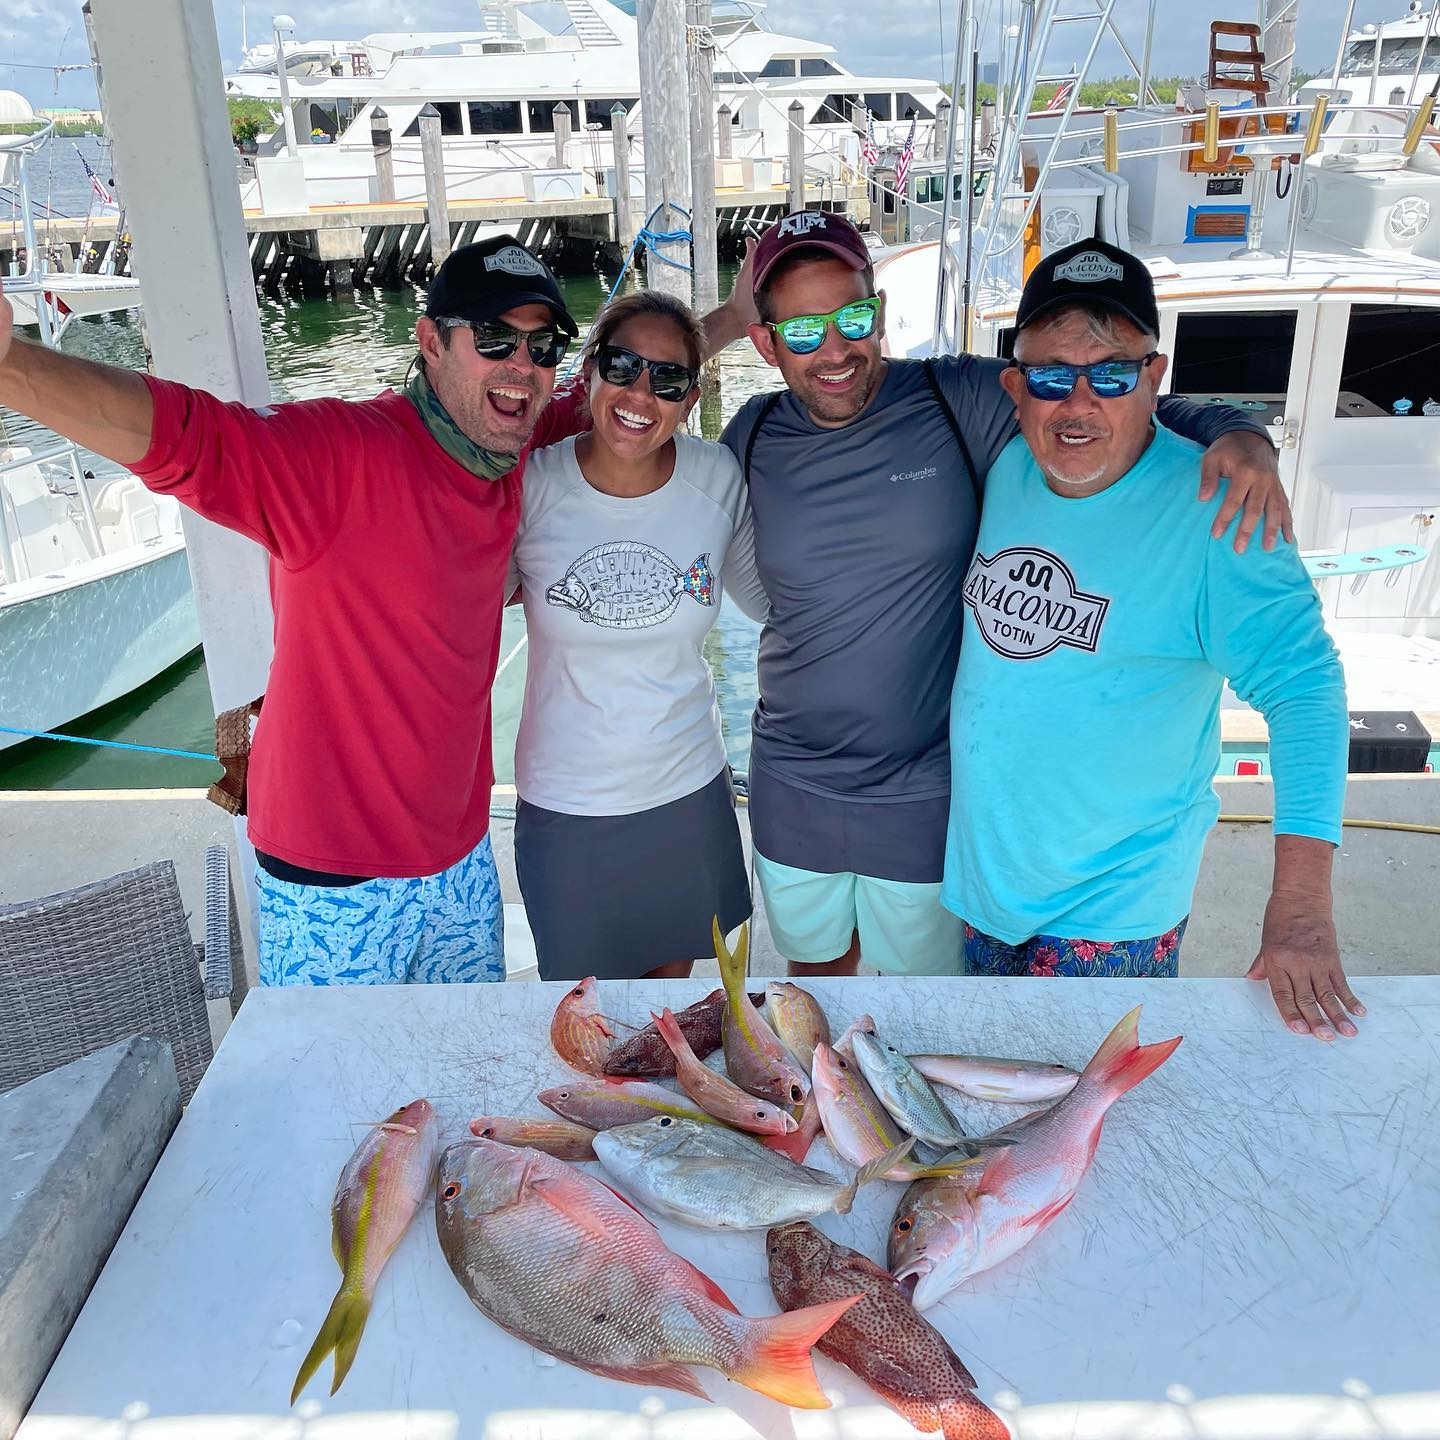 Today, The reef provided Pile of Snappers and Grouper Josh and Julie and their family. They were wore out by 9:15 and wanted to go sightseeing so we cruised around the rest of the trip. Great times with great people. #GOHARDFISHING #miamibeach #charterfishing #miamisluckiestcharterboat @starbrite_com